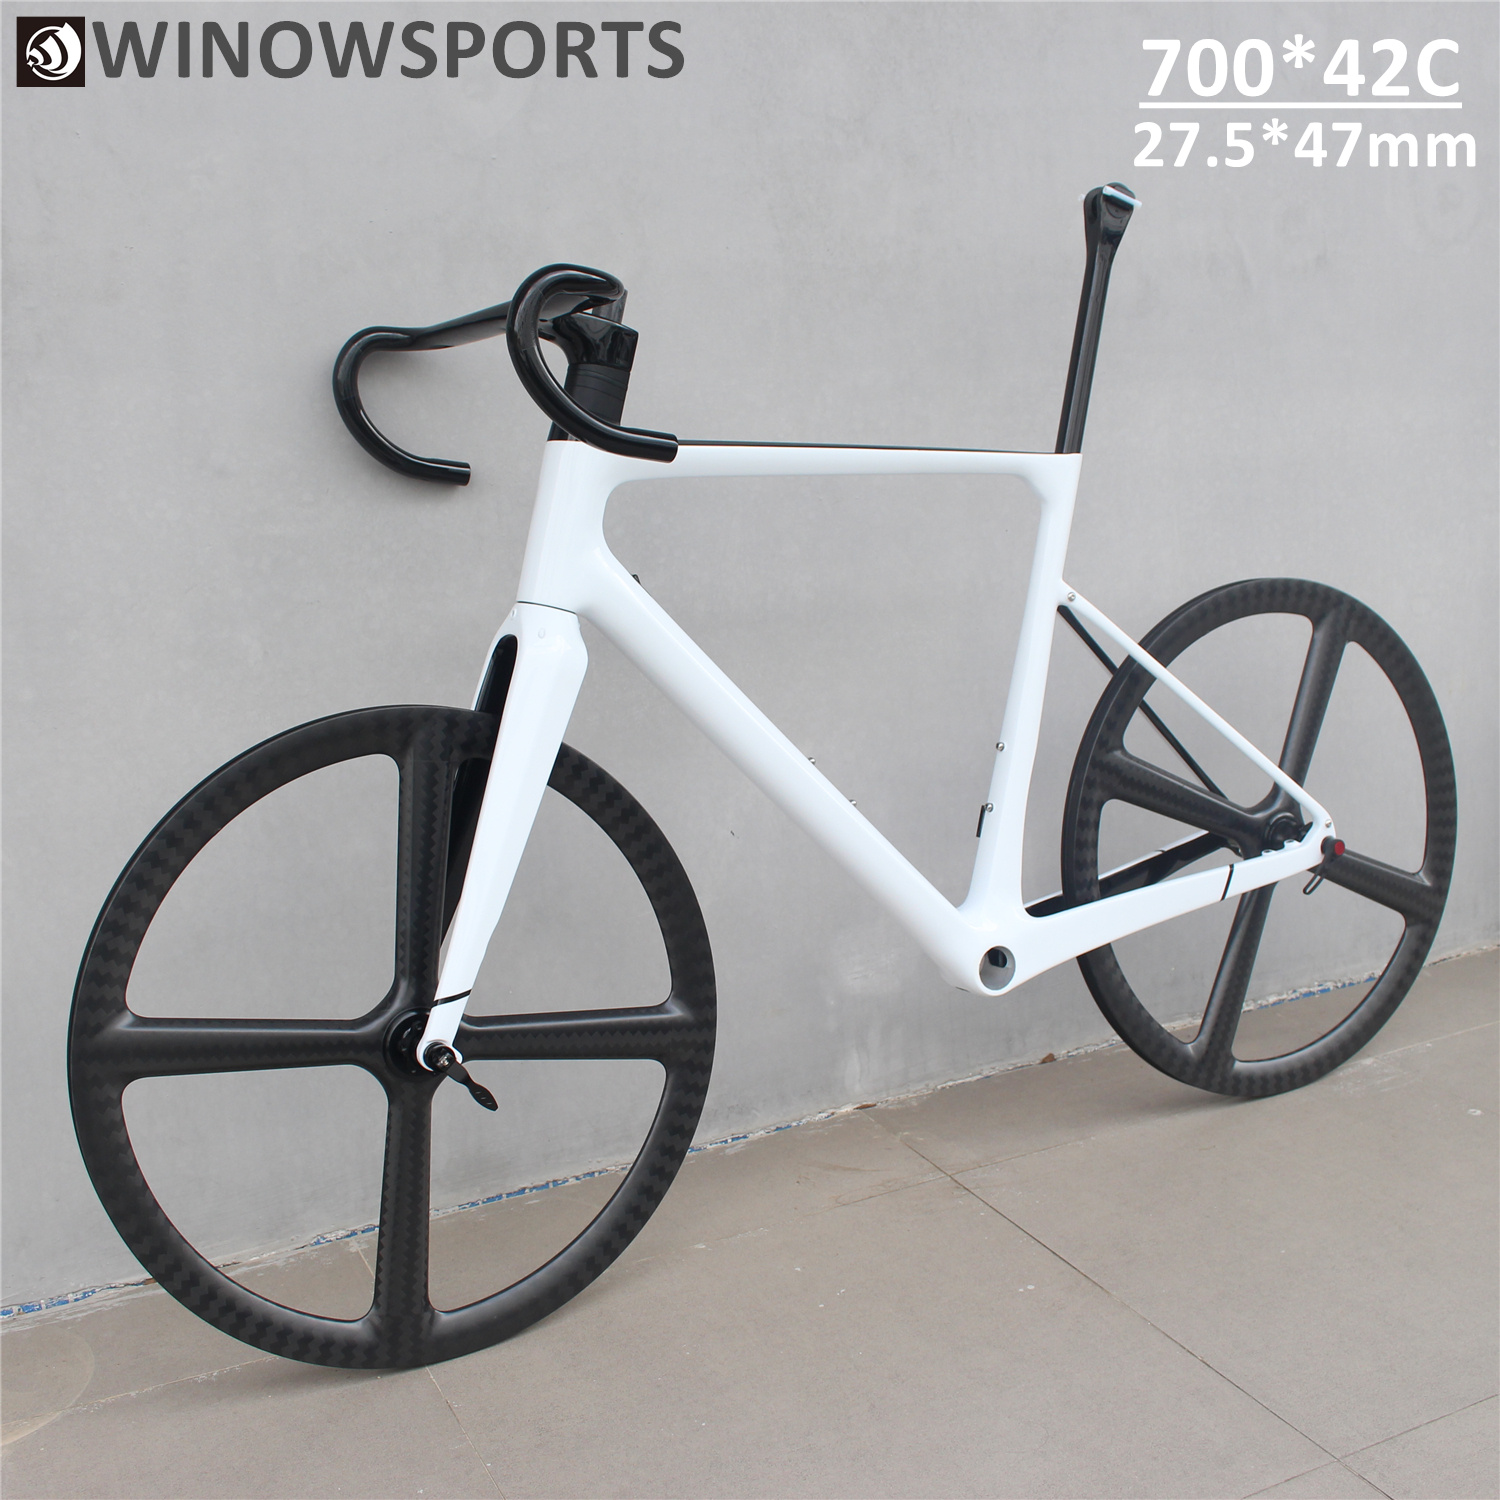 WINOWSPORTS Light Weight Carbon Gravel Bike Frame 12*100/12*142mm 650b 47mm Tyre 700*42C With Integrated Handlebars Cyclcross